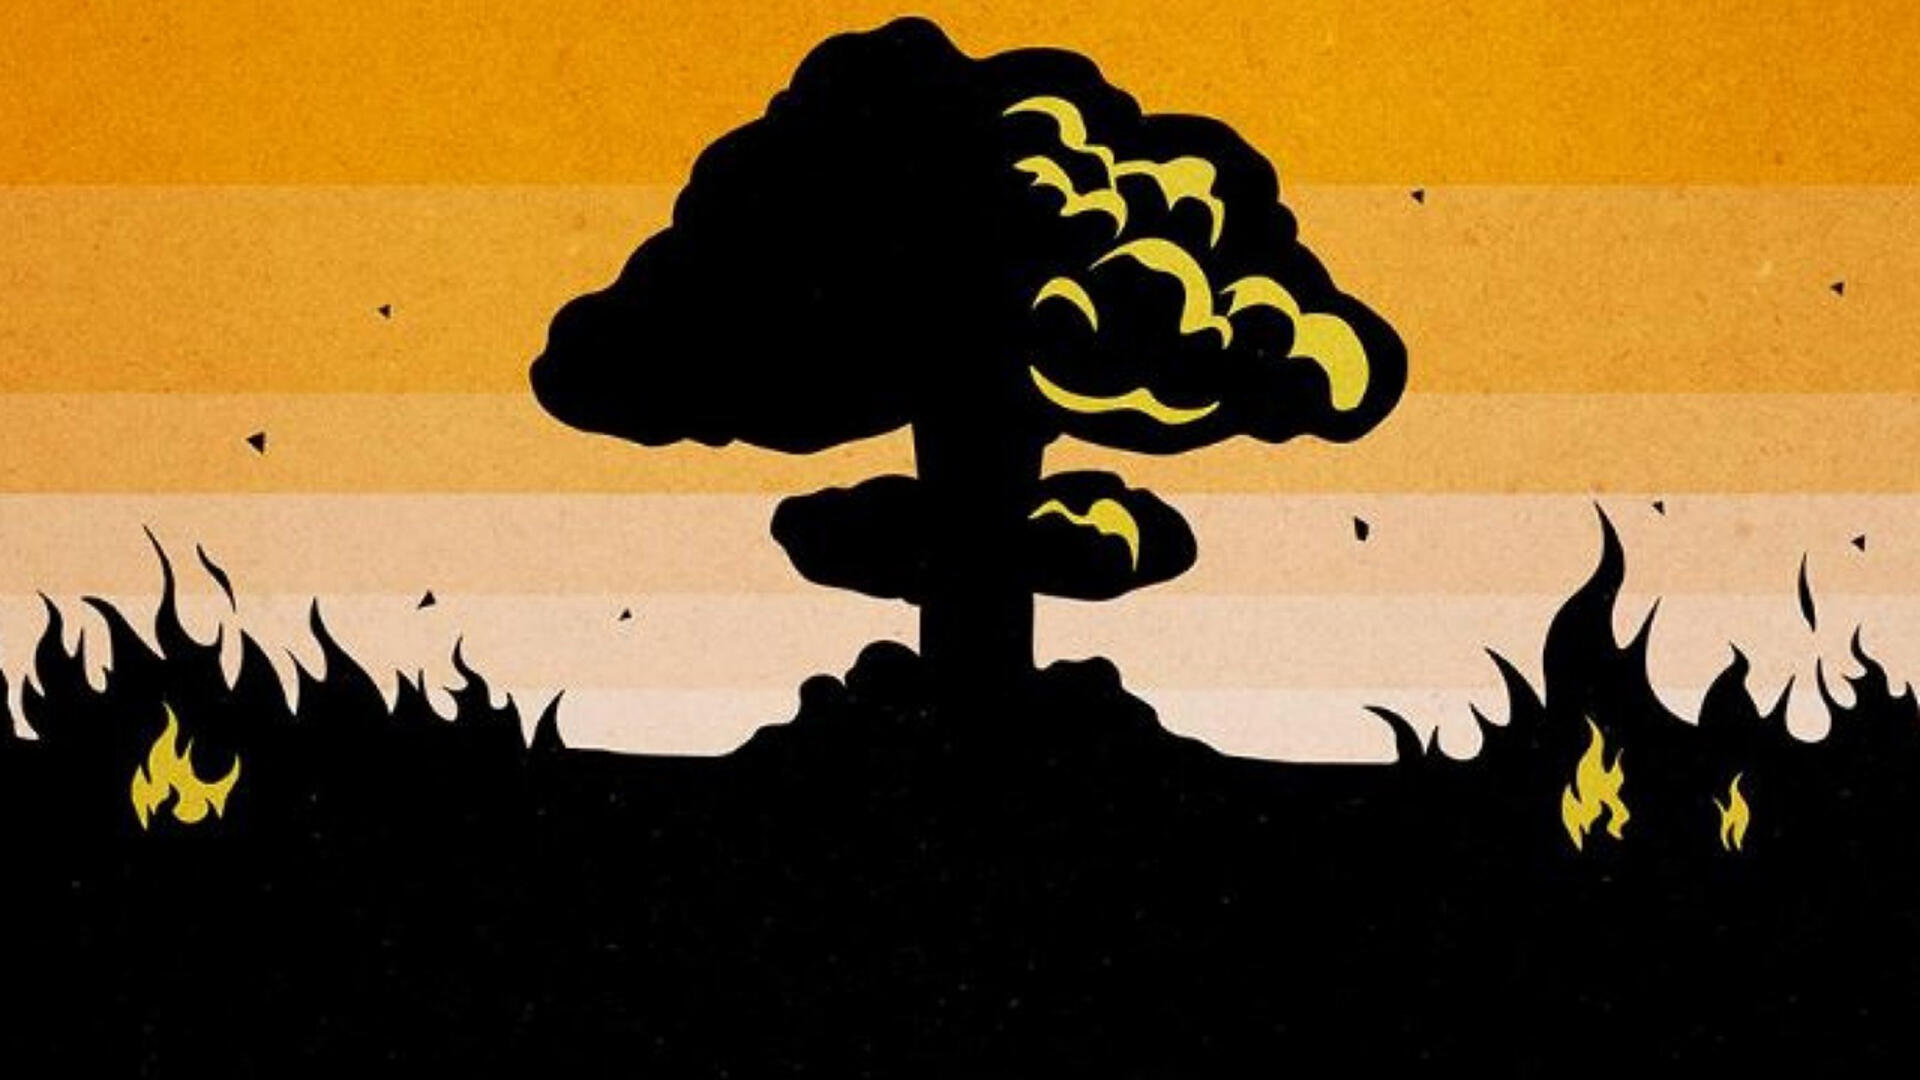 Fallout 76 Nuclear Winter is a Sometimes Brilliant Battle Royale Game Built on a Terrible Foundation